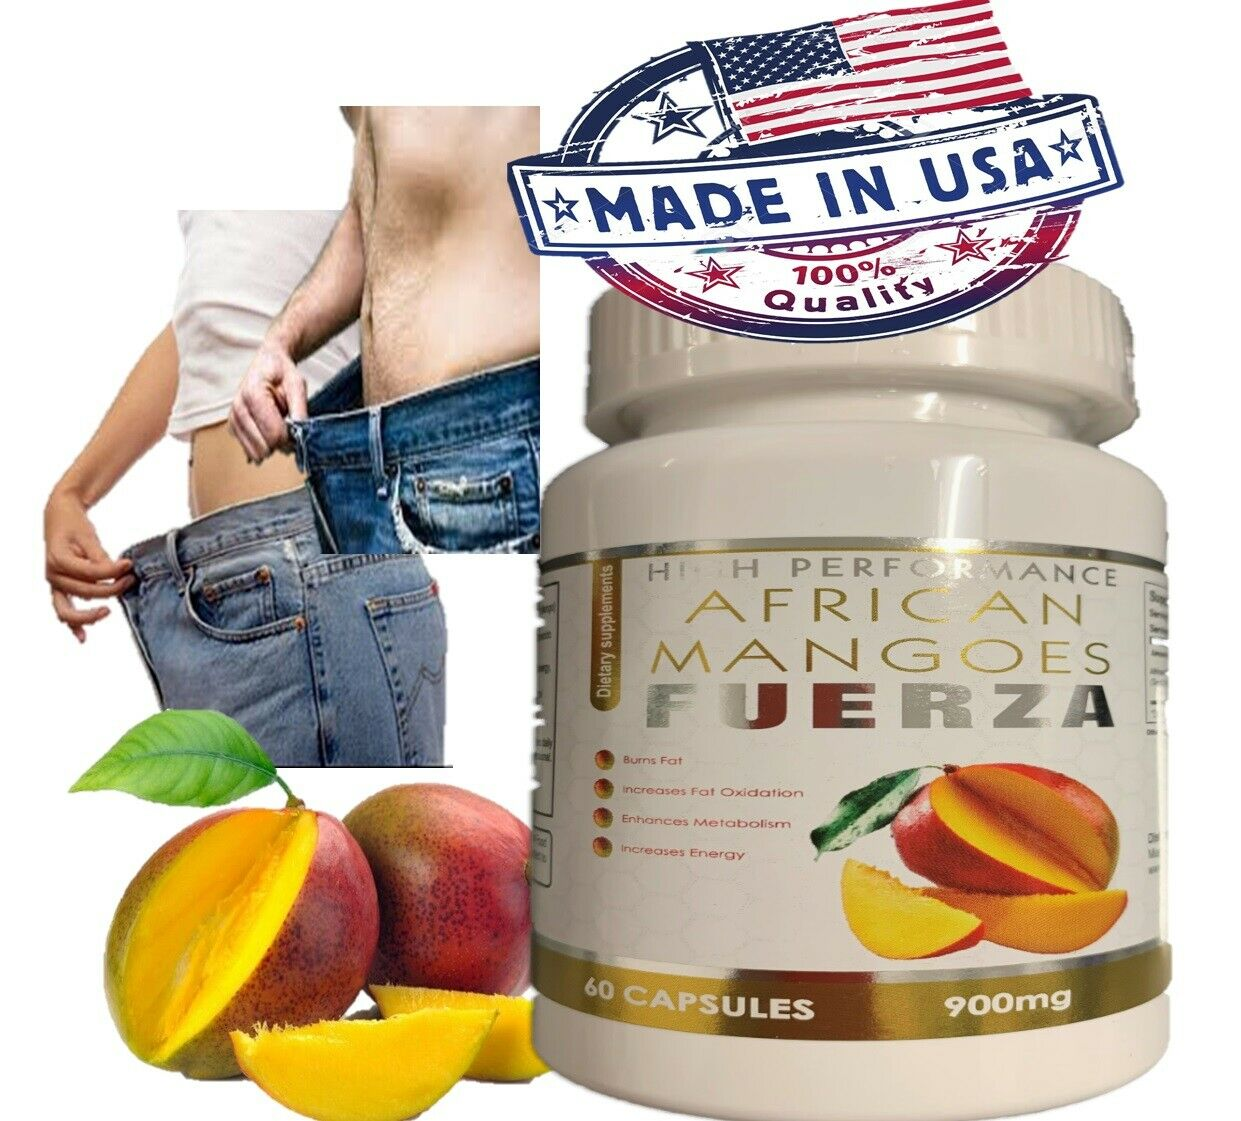 Extreme weight loss pills - PURE AFRICAN MANGO EXTRACT 900mg 1 Bottle 60 Caps